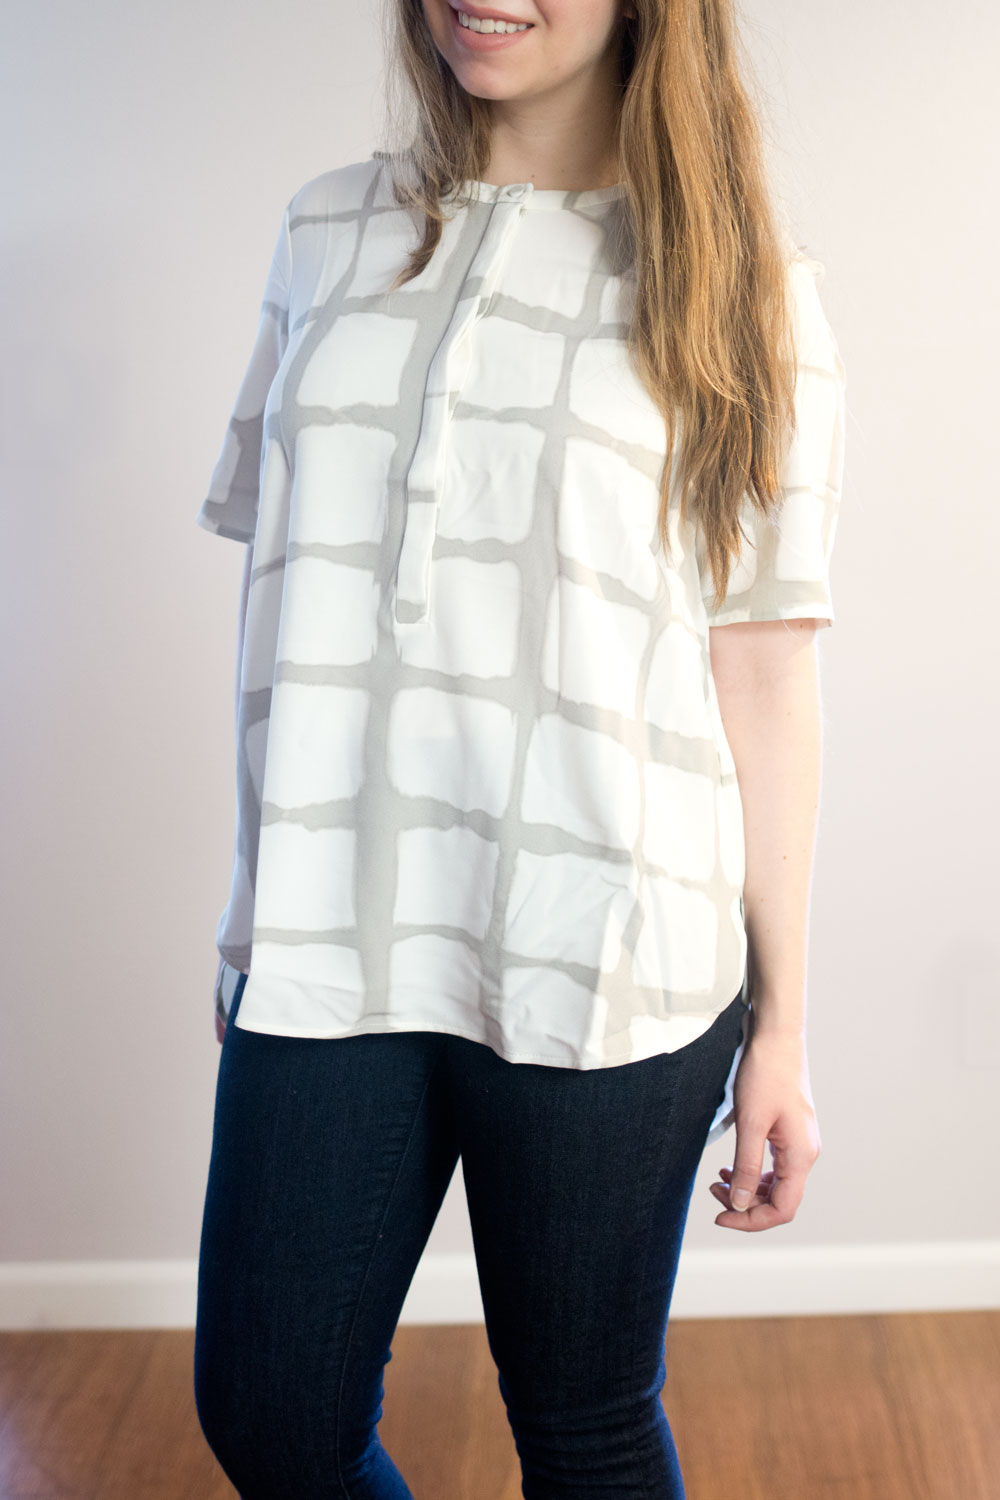 Adam Lippes for Target Button Down Crepe Blouse in Grey Painterly Plaid // hellorigby seattle fashion blog